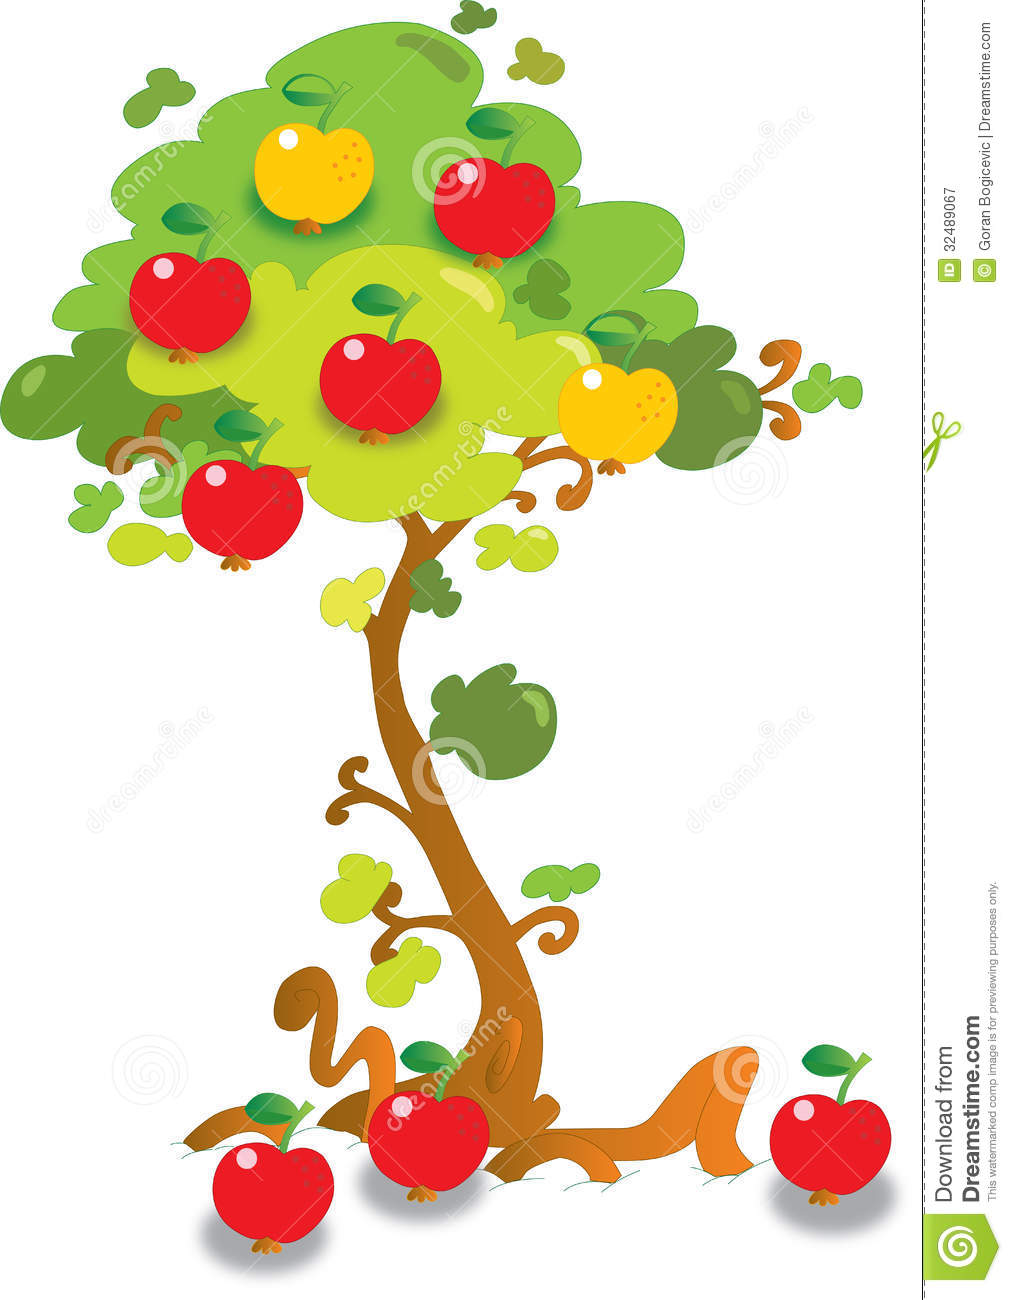 Apple Tree Royalty Free Stock Photography - Image: 32489067